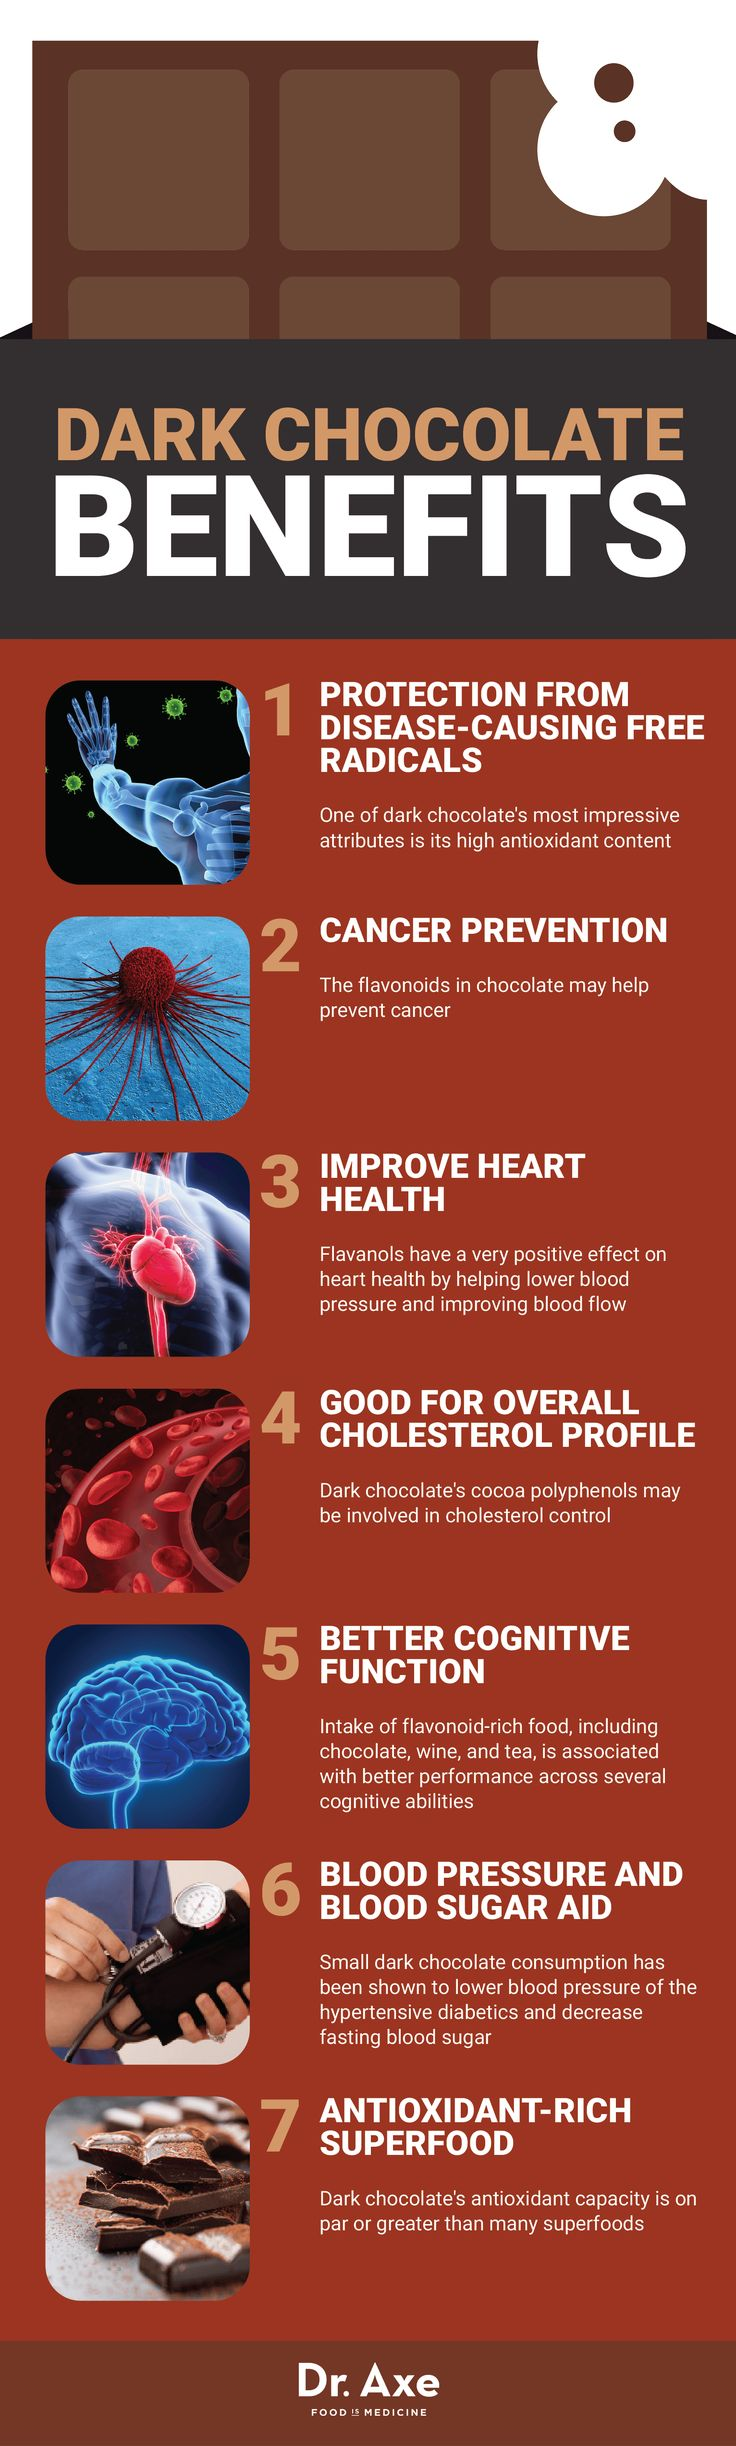 Benefits of dark chocolate - Dr. Axe http://www.draxe.com #health #holistic #natural